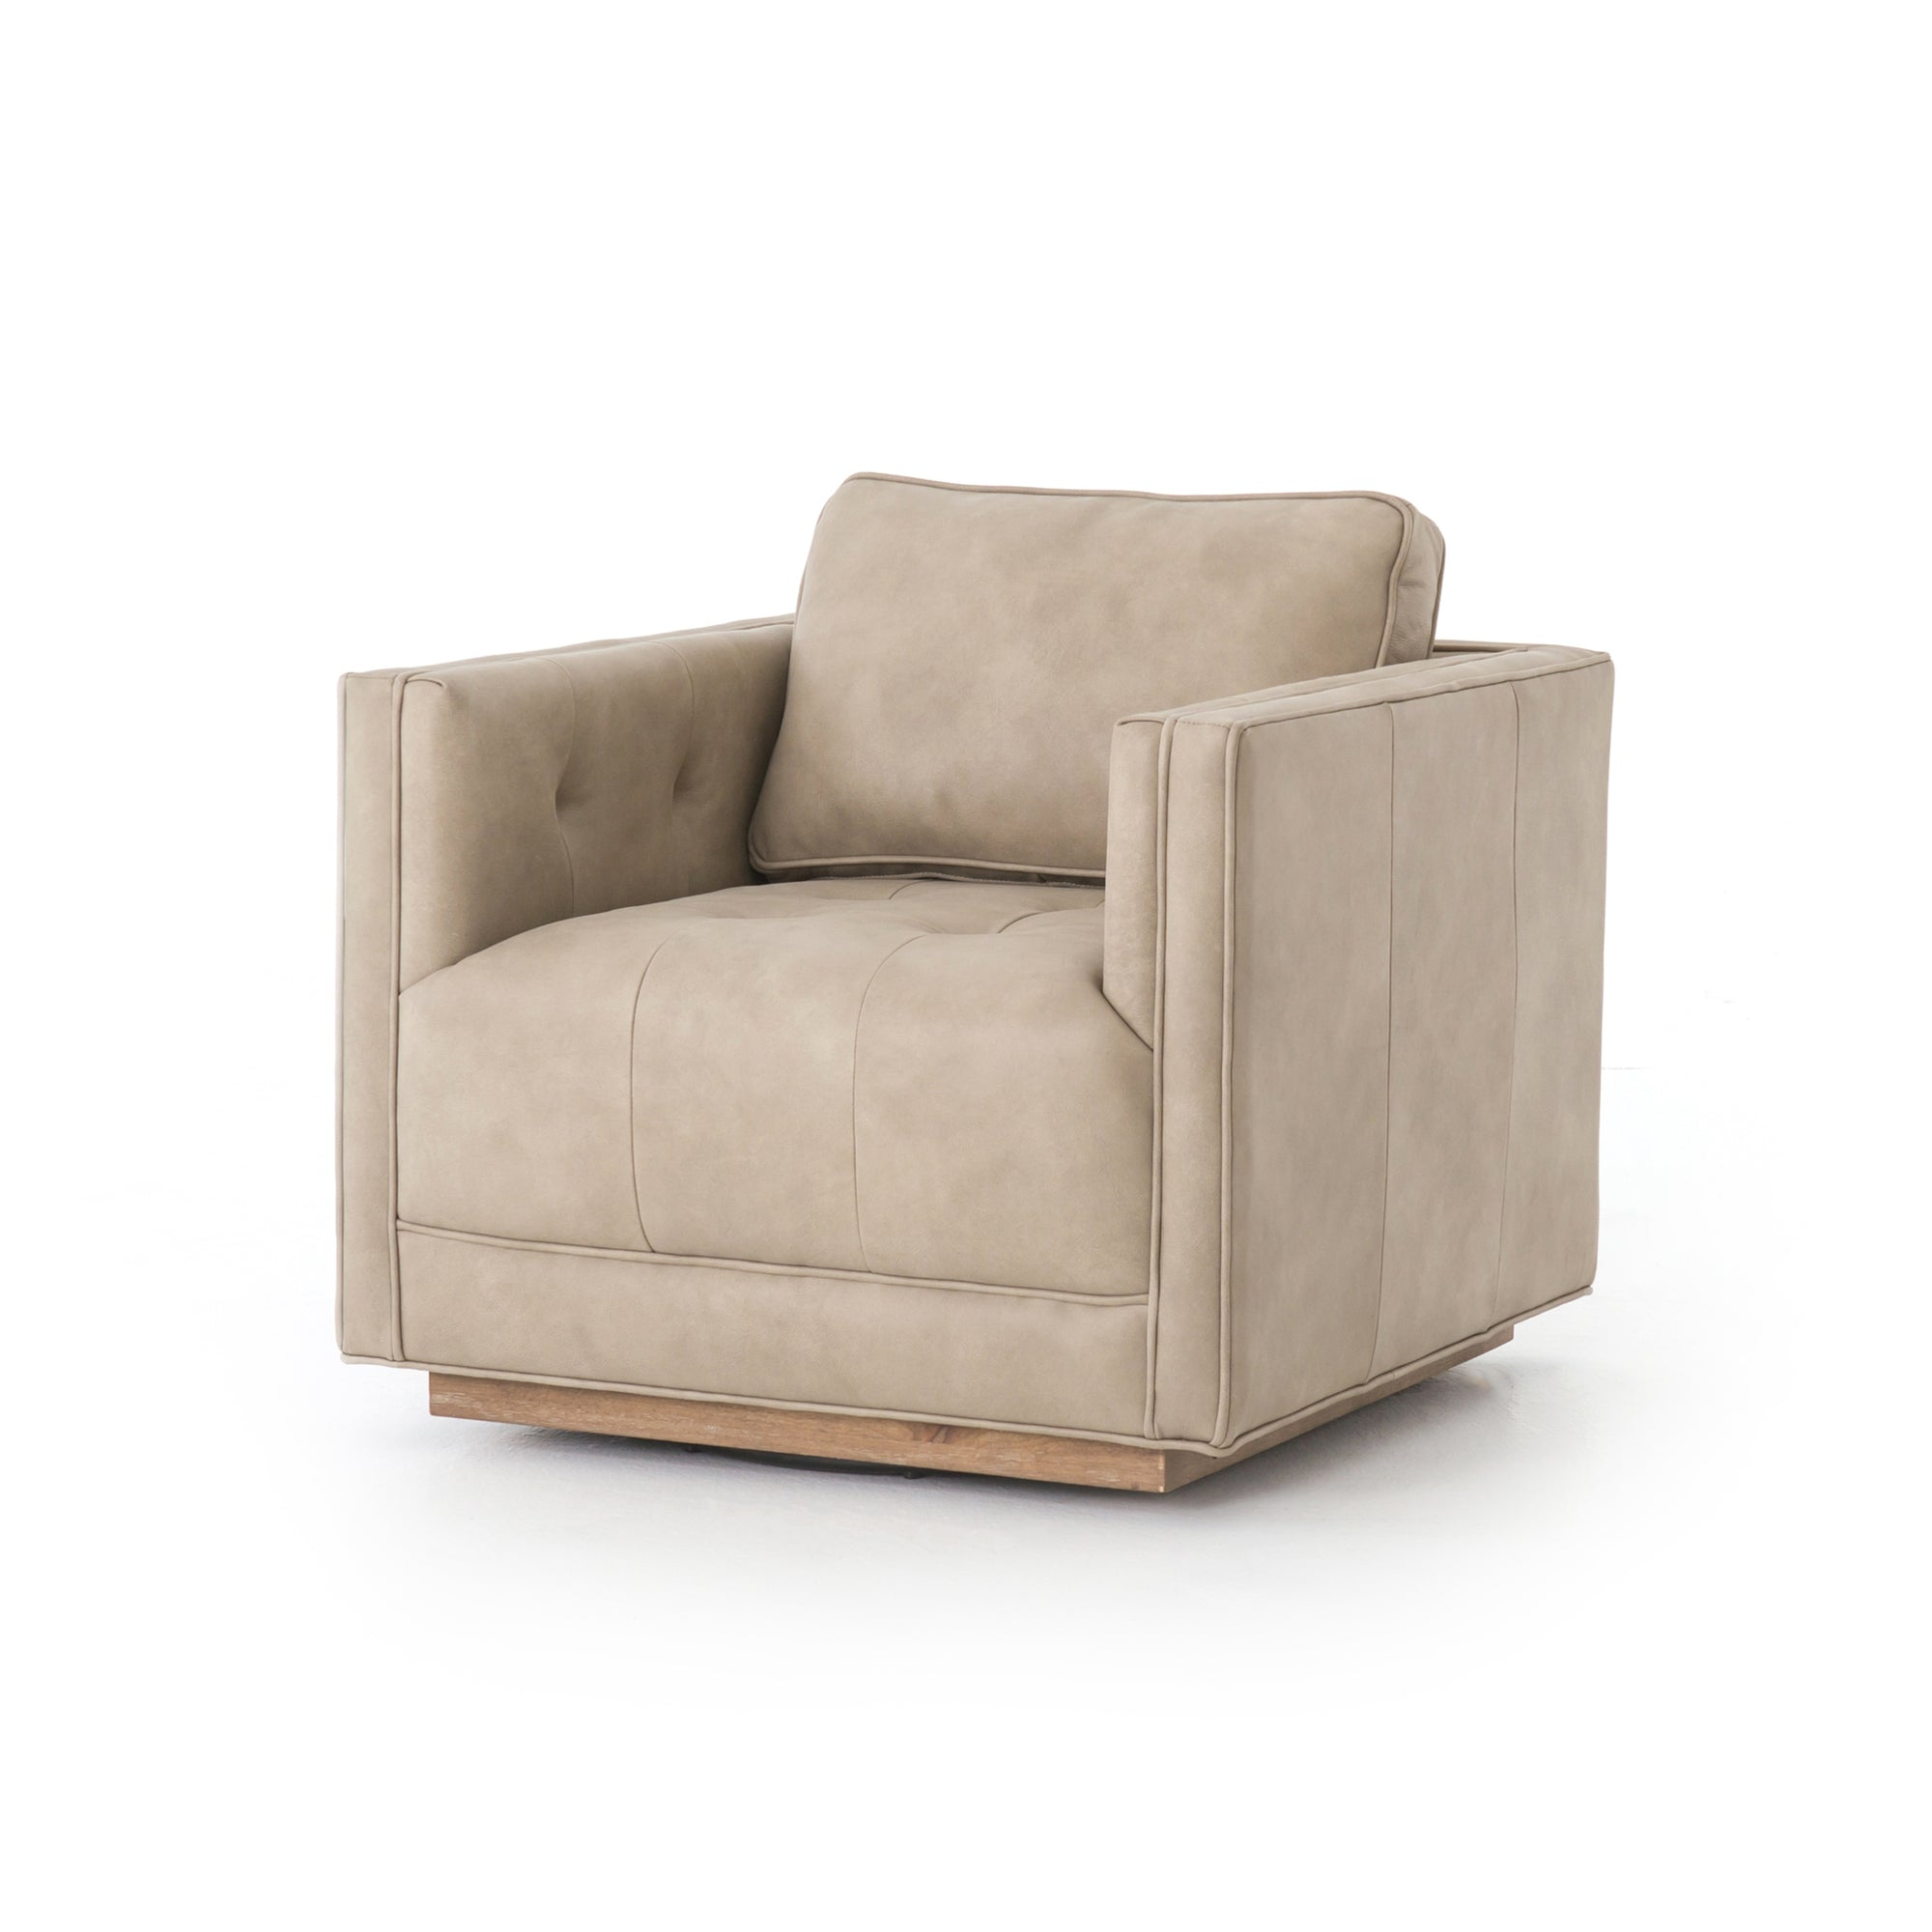 Kiera Swivel Chair - Umber Natural